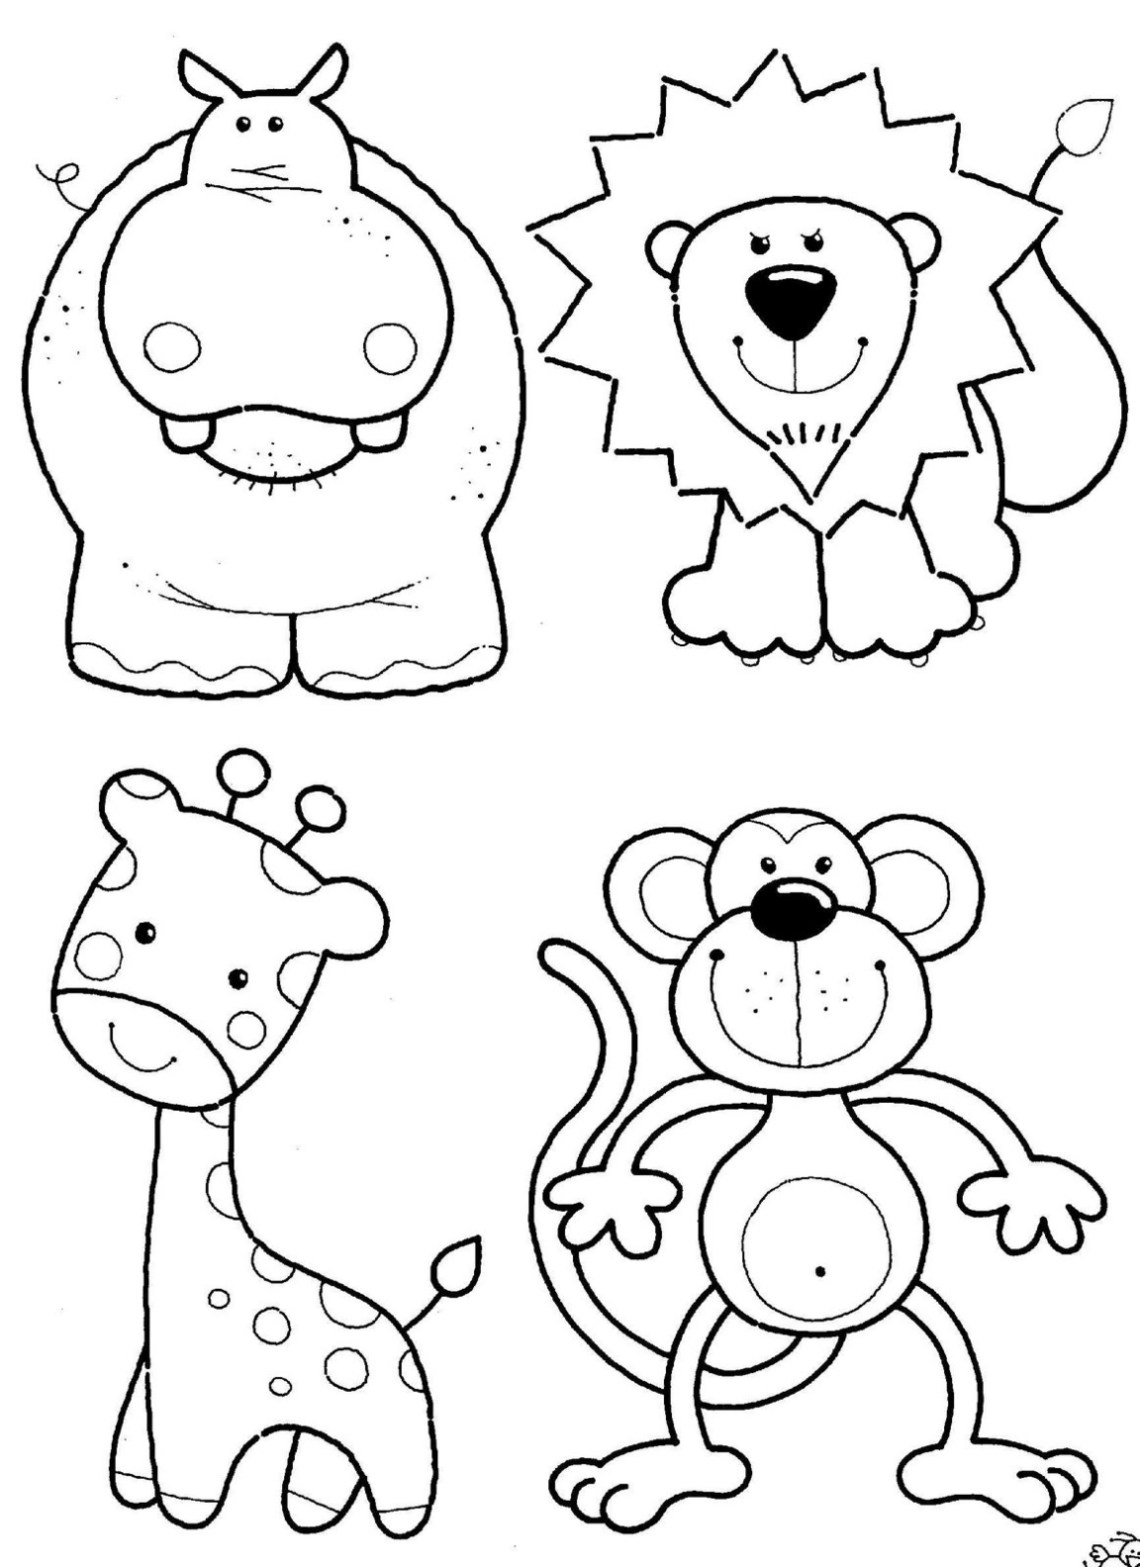 Jungle animal coloring pages to download and print for free | printable colouring pages jungle animals